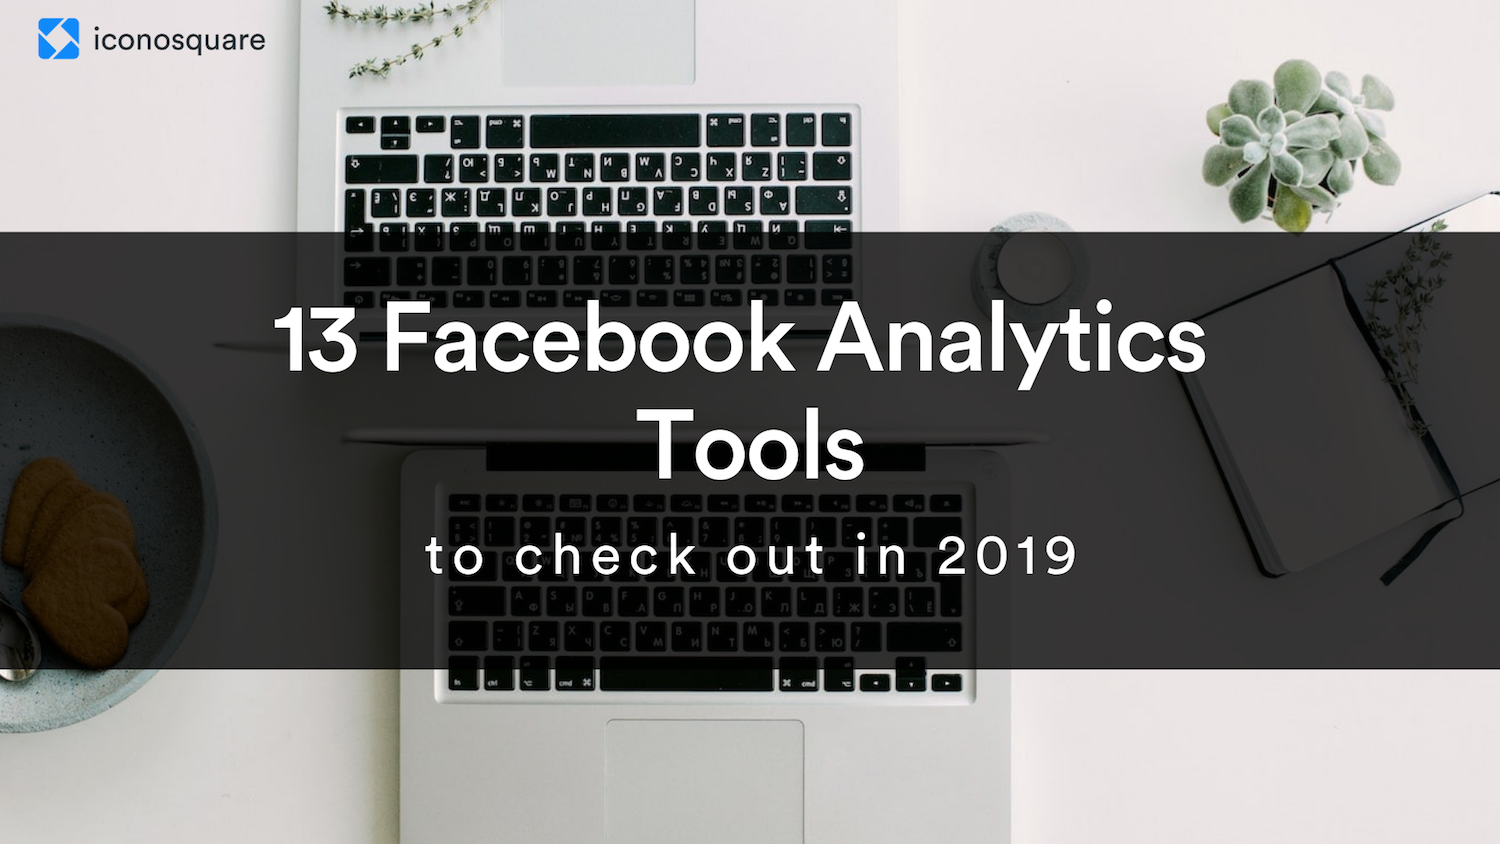 Facebook analytics tools to check out in 2019